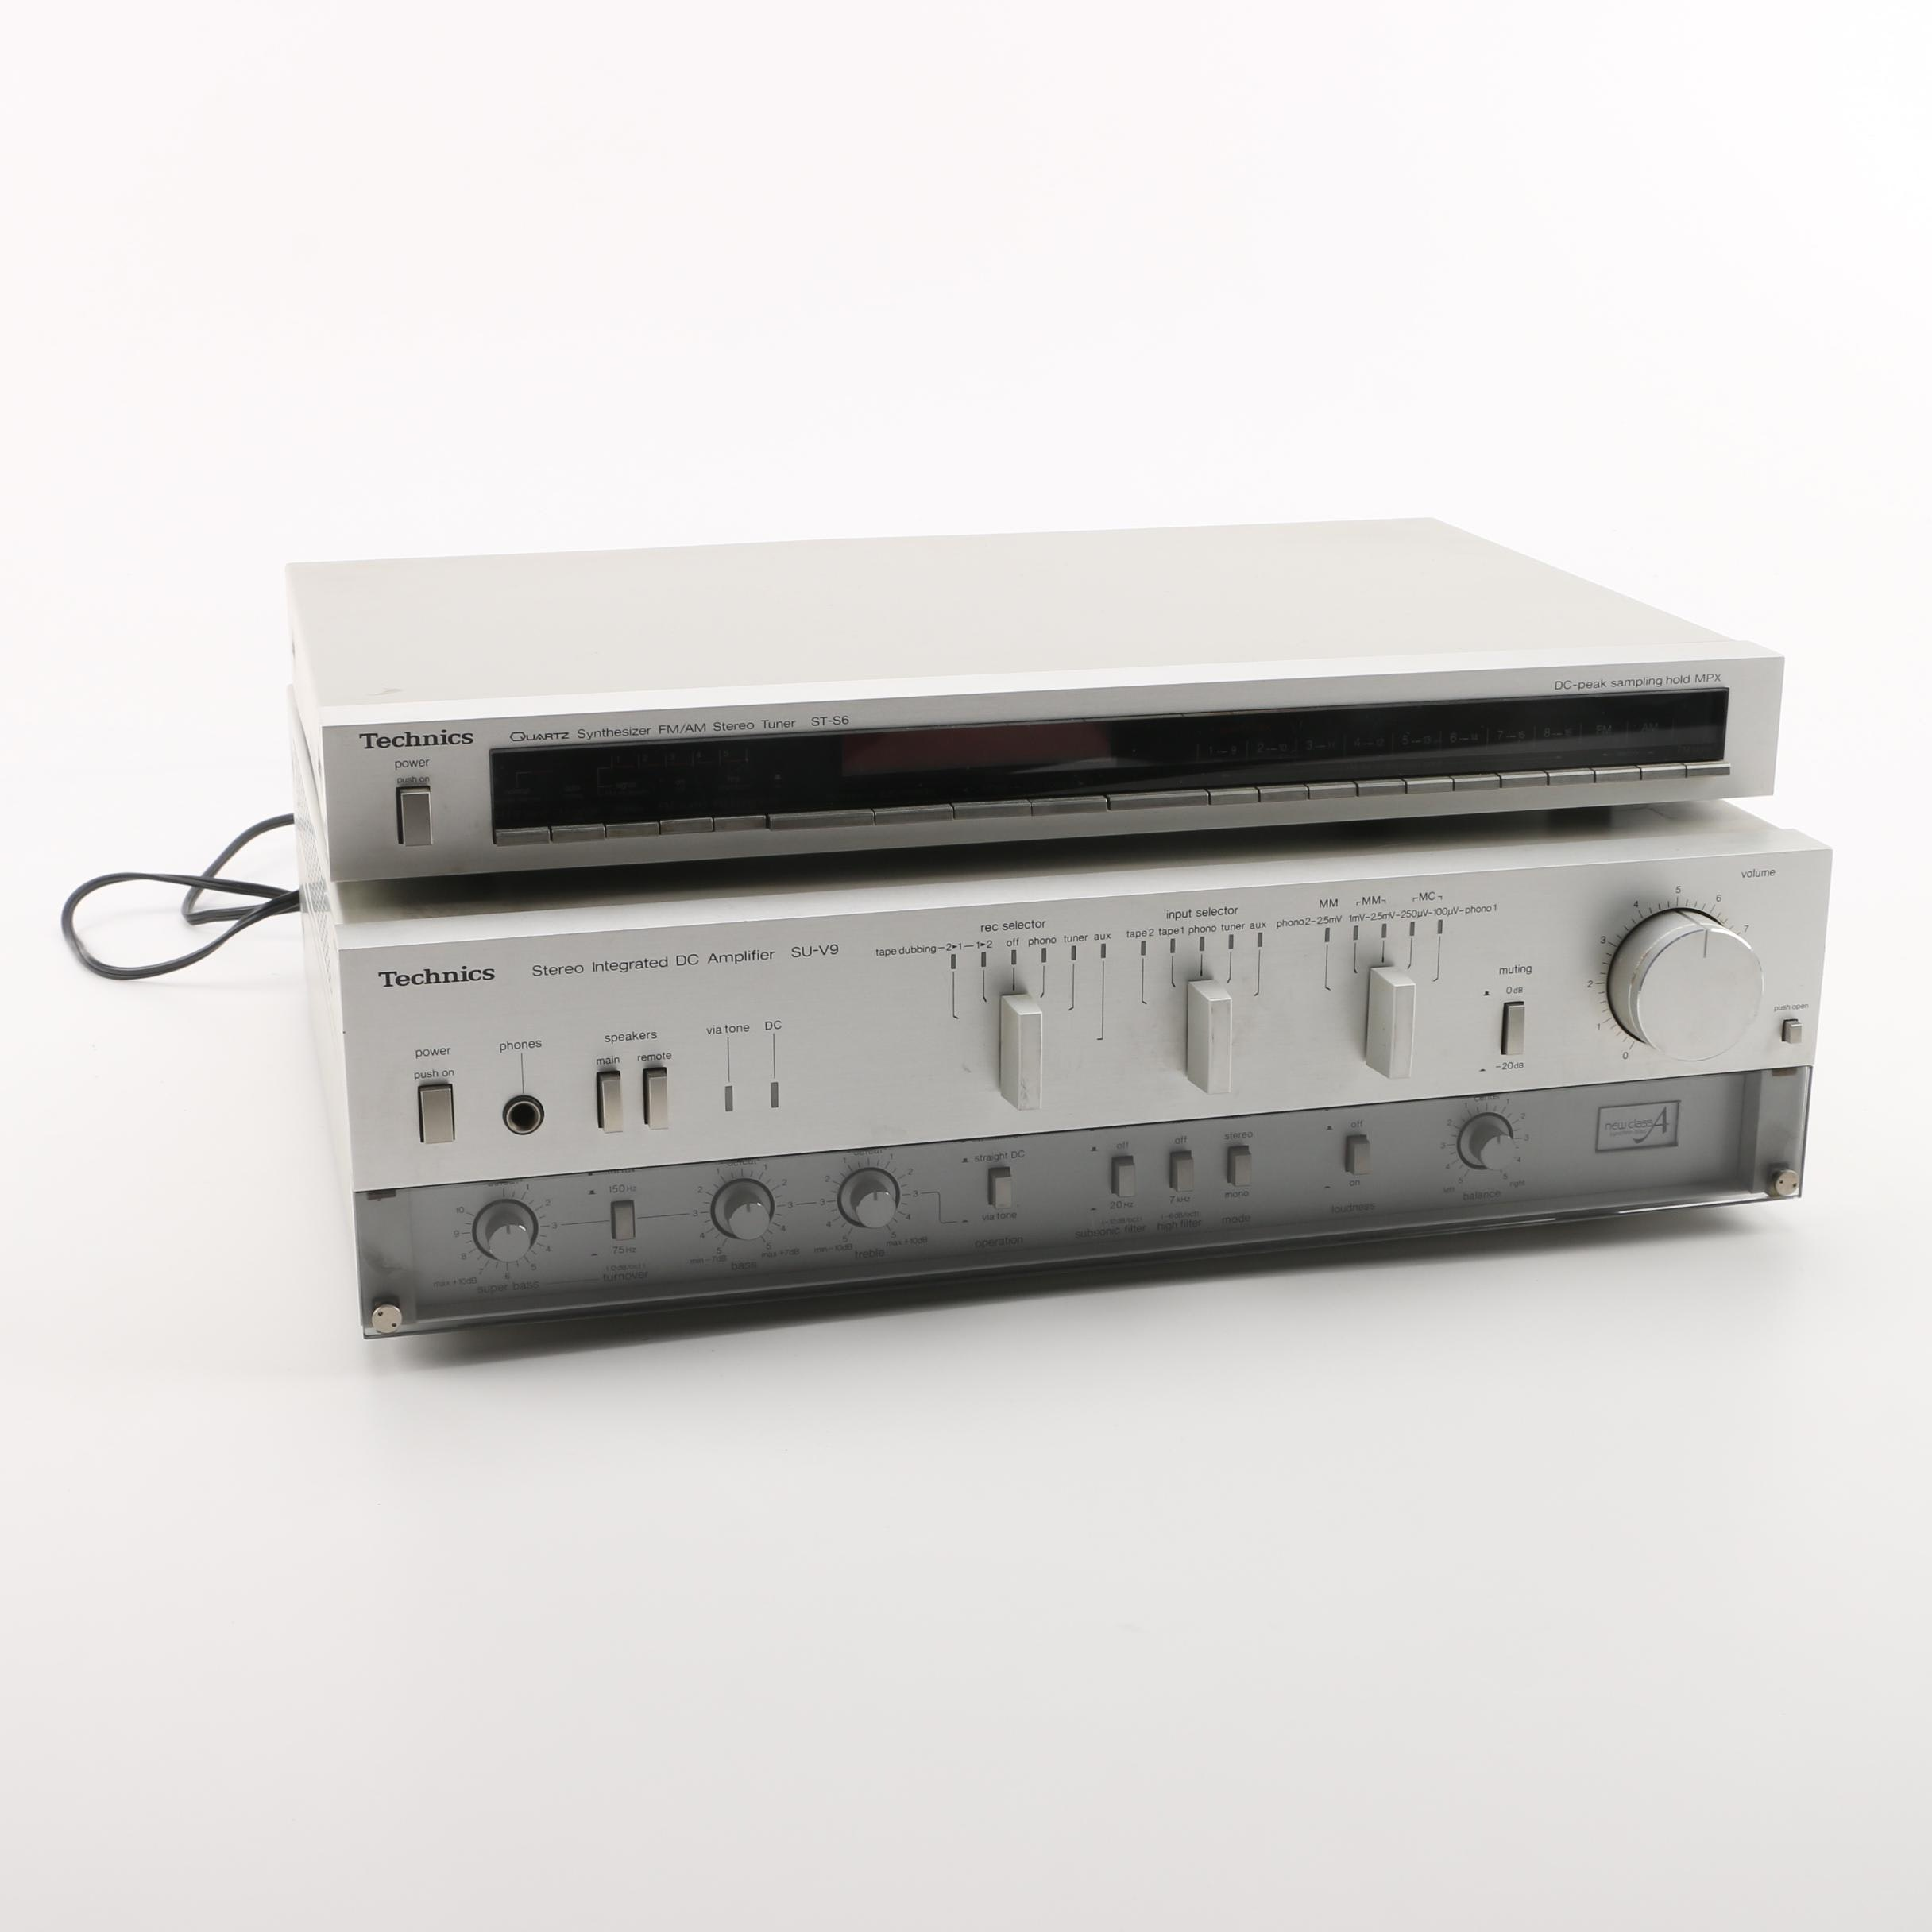 Technics Amplifier and FM/AM Stereo Tuner Synthesizer